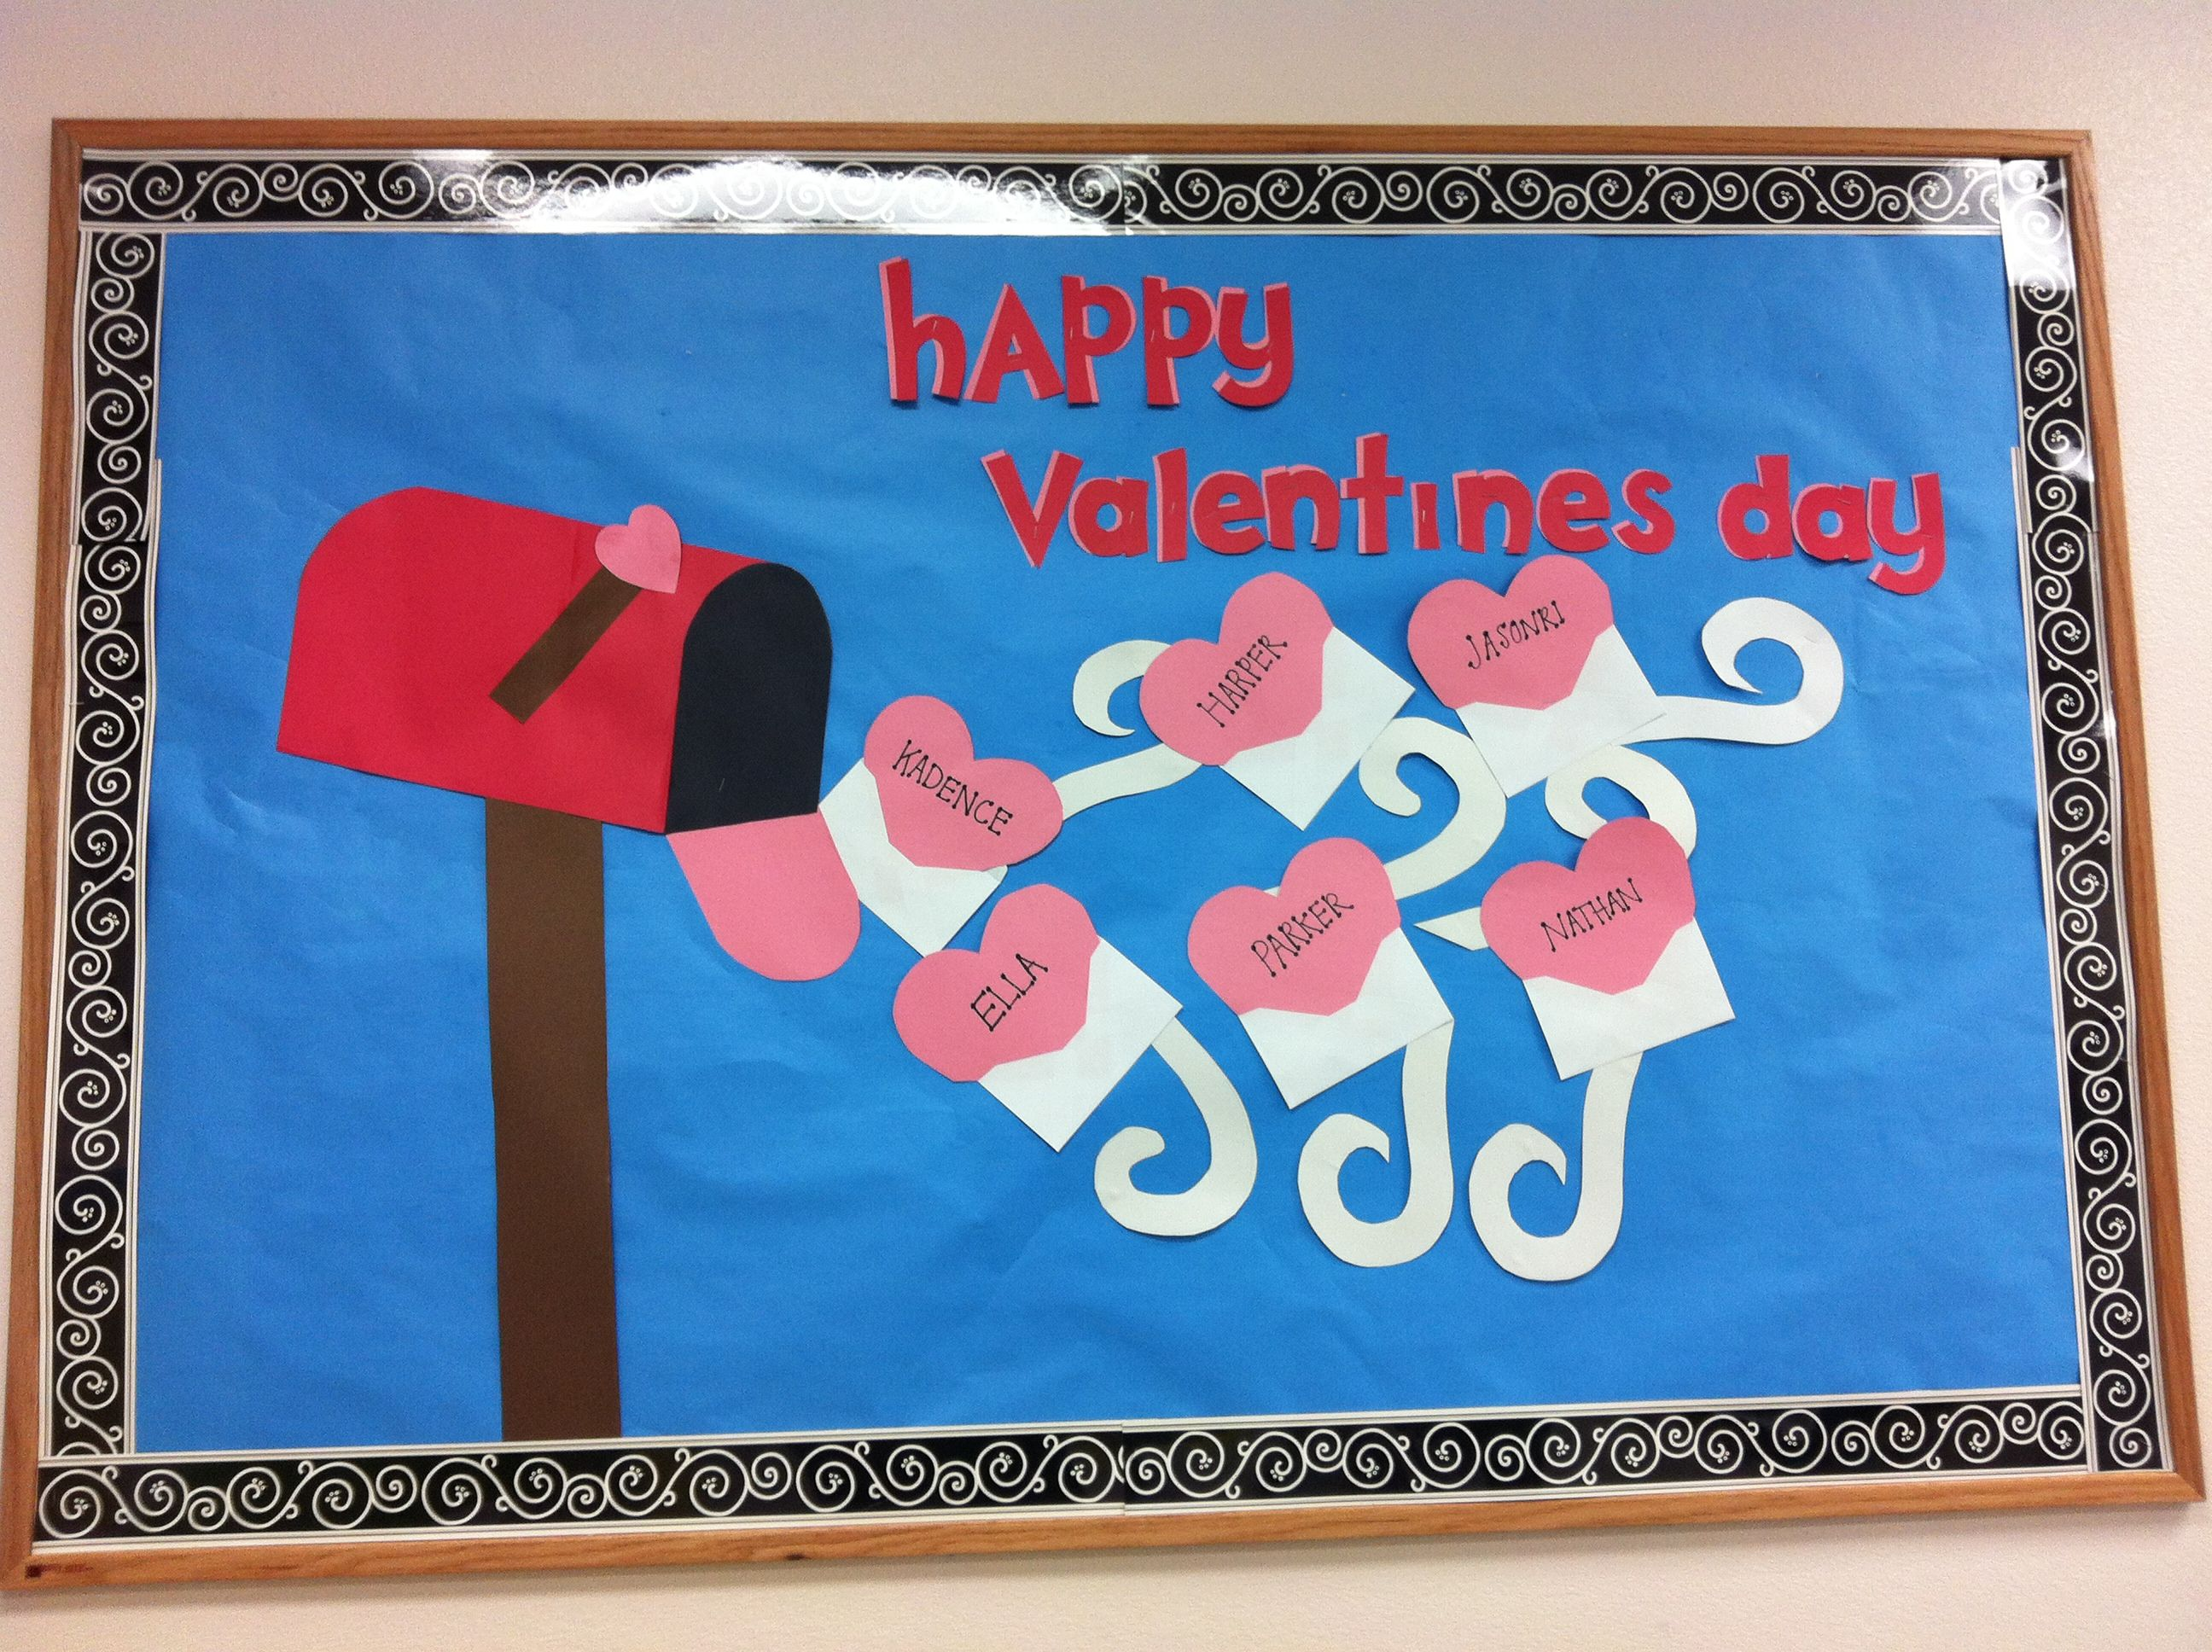 Preschool Classroom Valentine Ideas : February valentine s bulletin board for my infant classroom